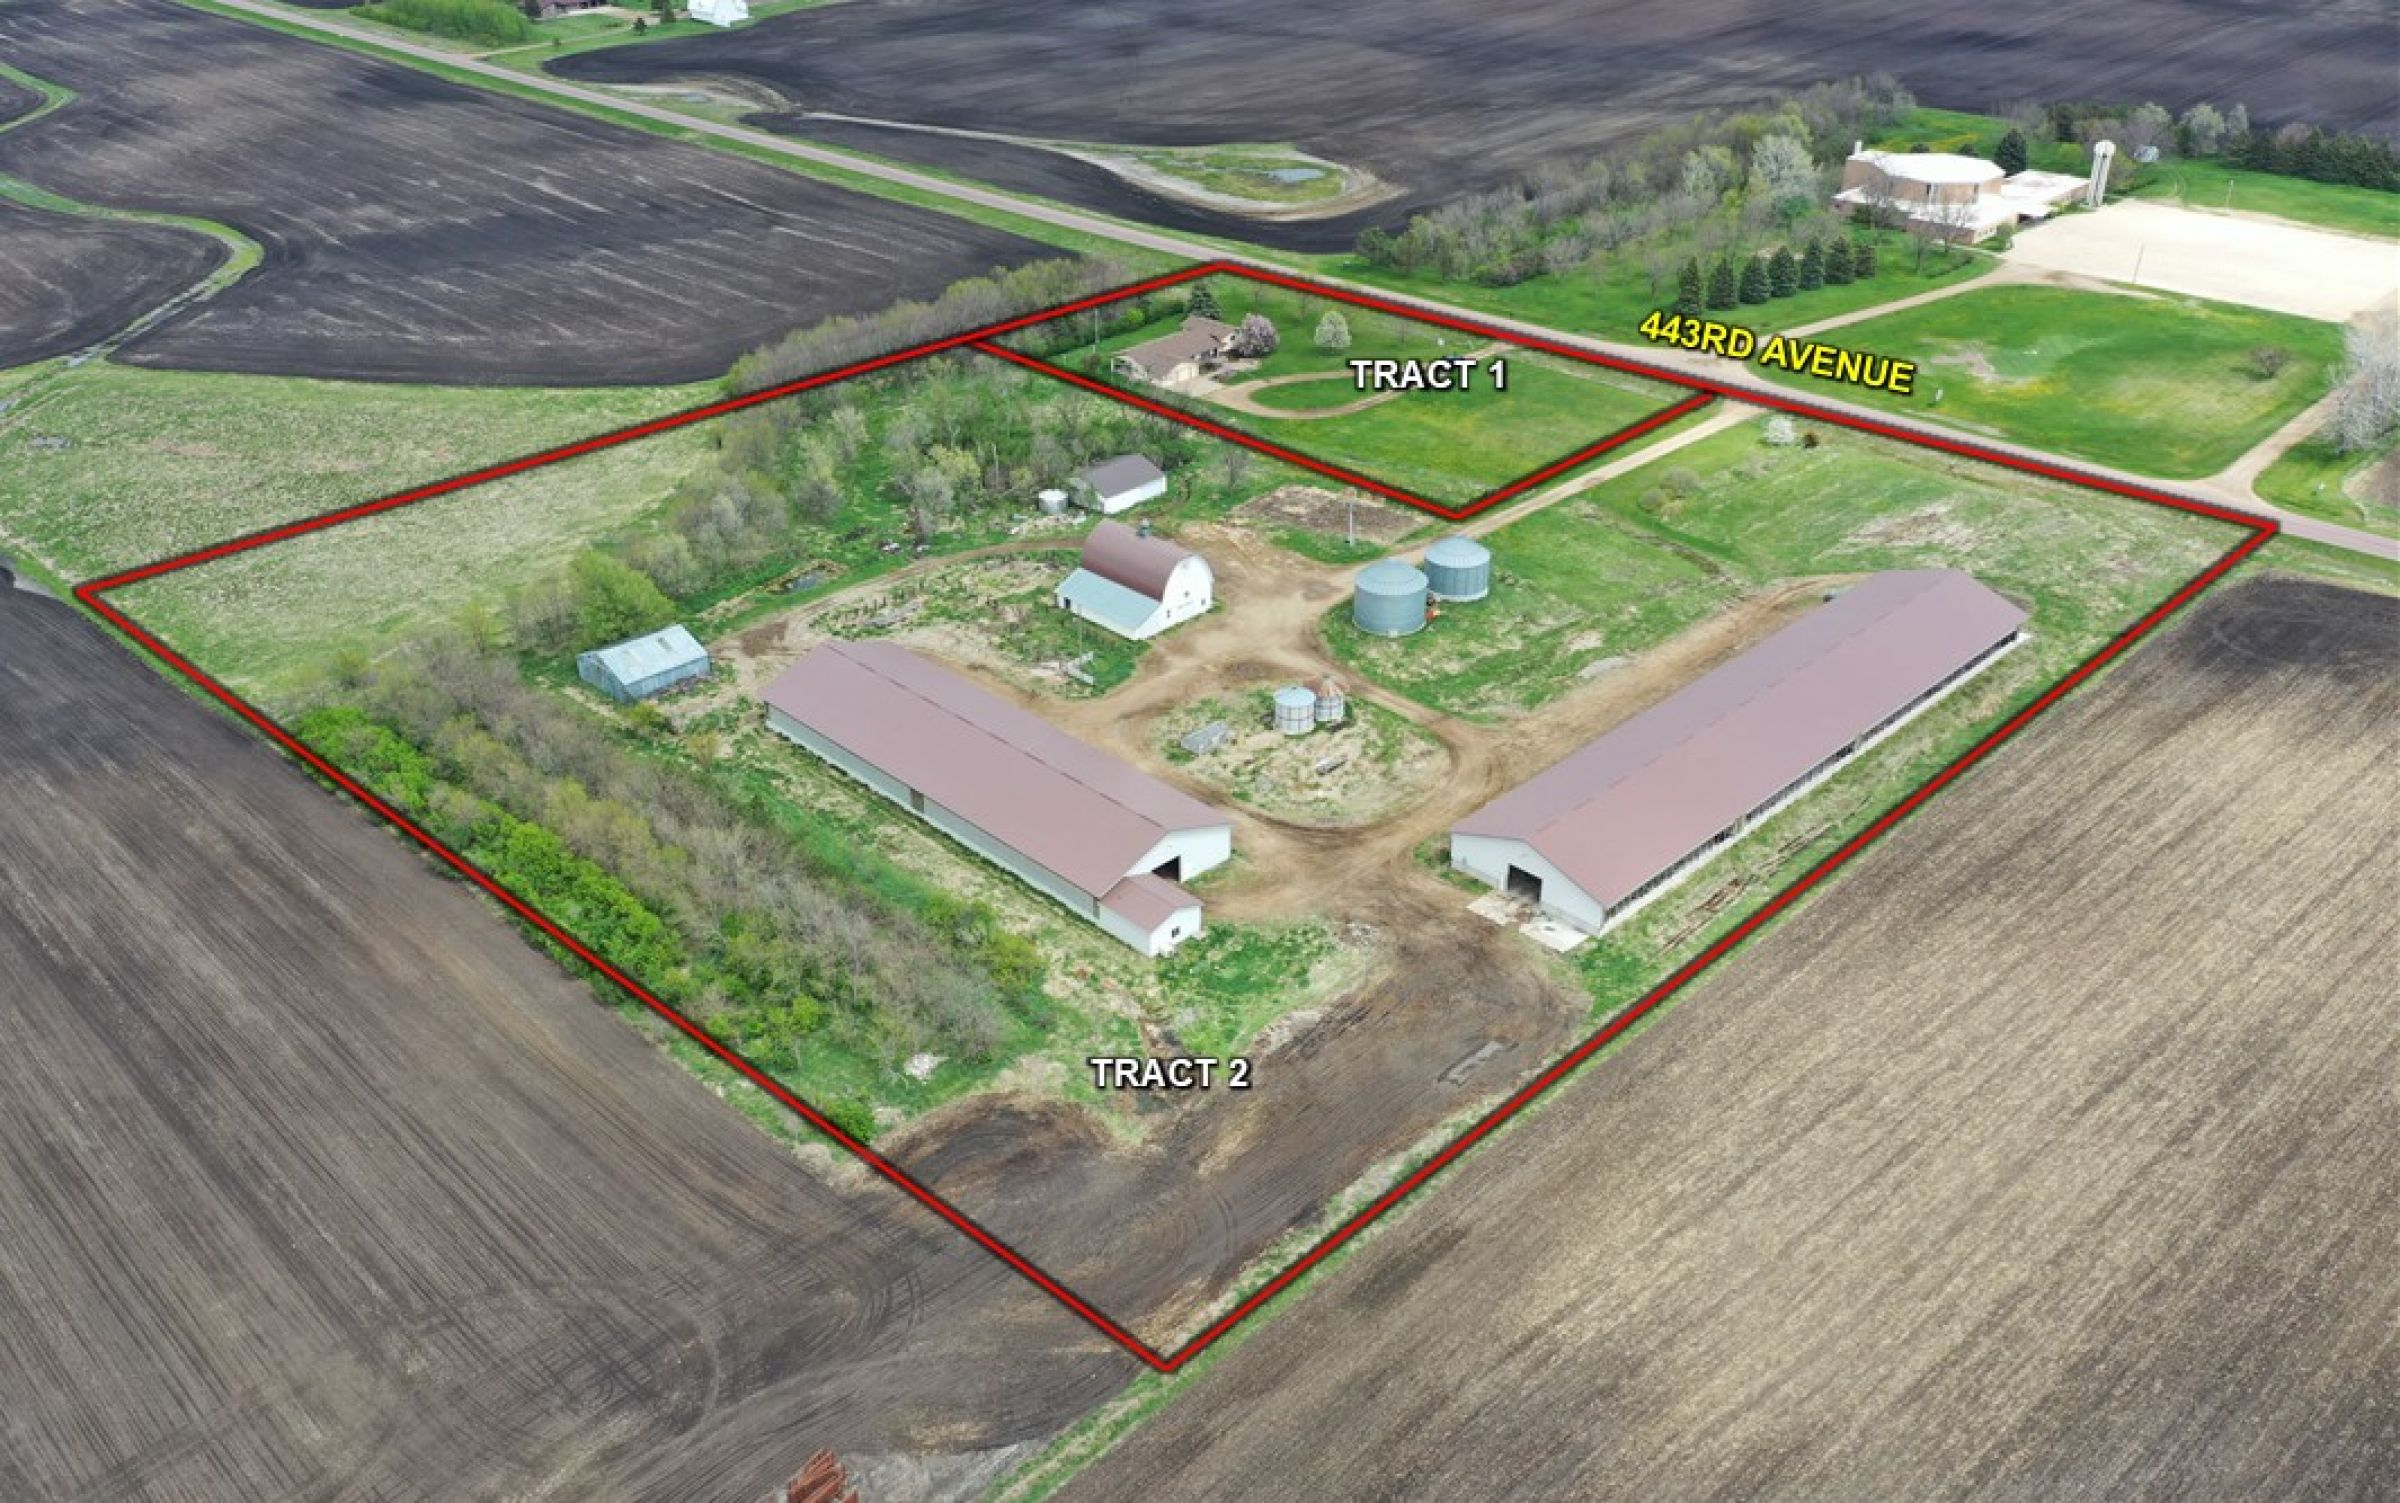 residential-auctions-land-turner-county-south-dakota-12-acres-listing-number-14971-1-2020-05-08-154910.jpg